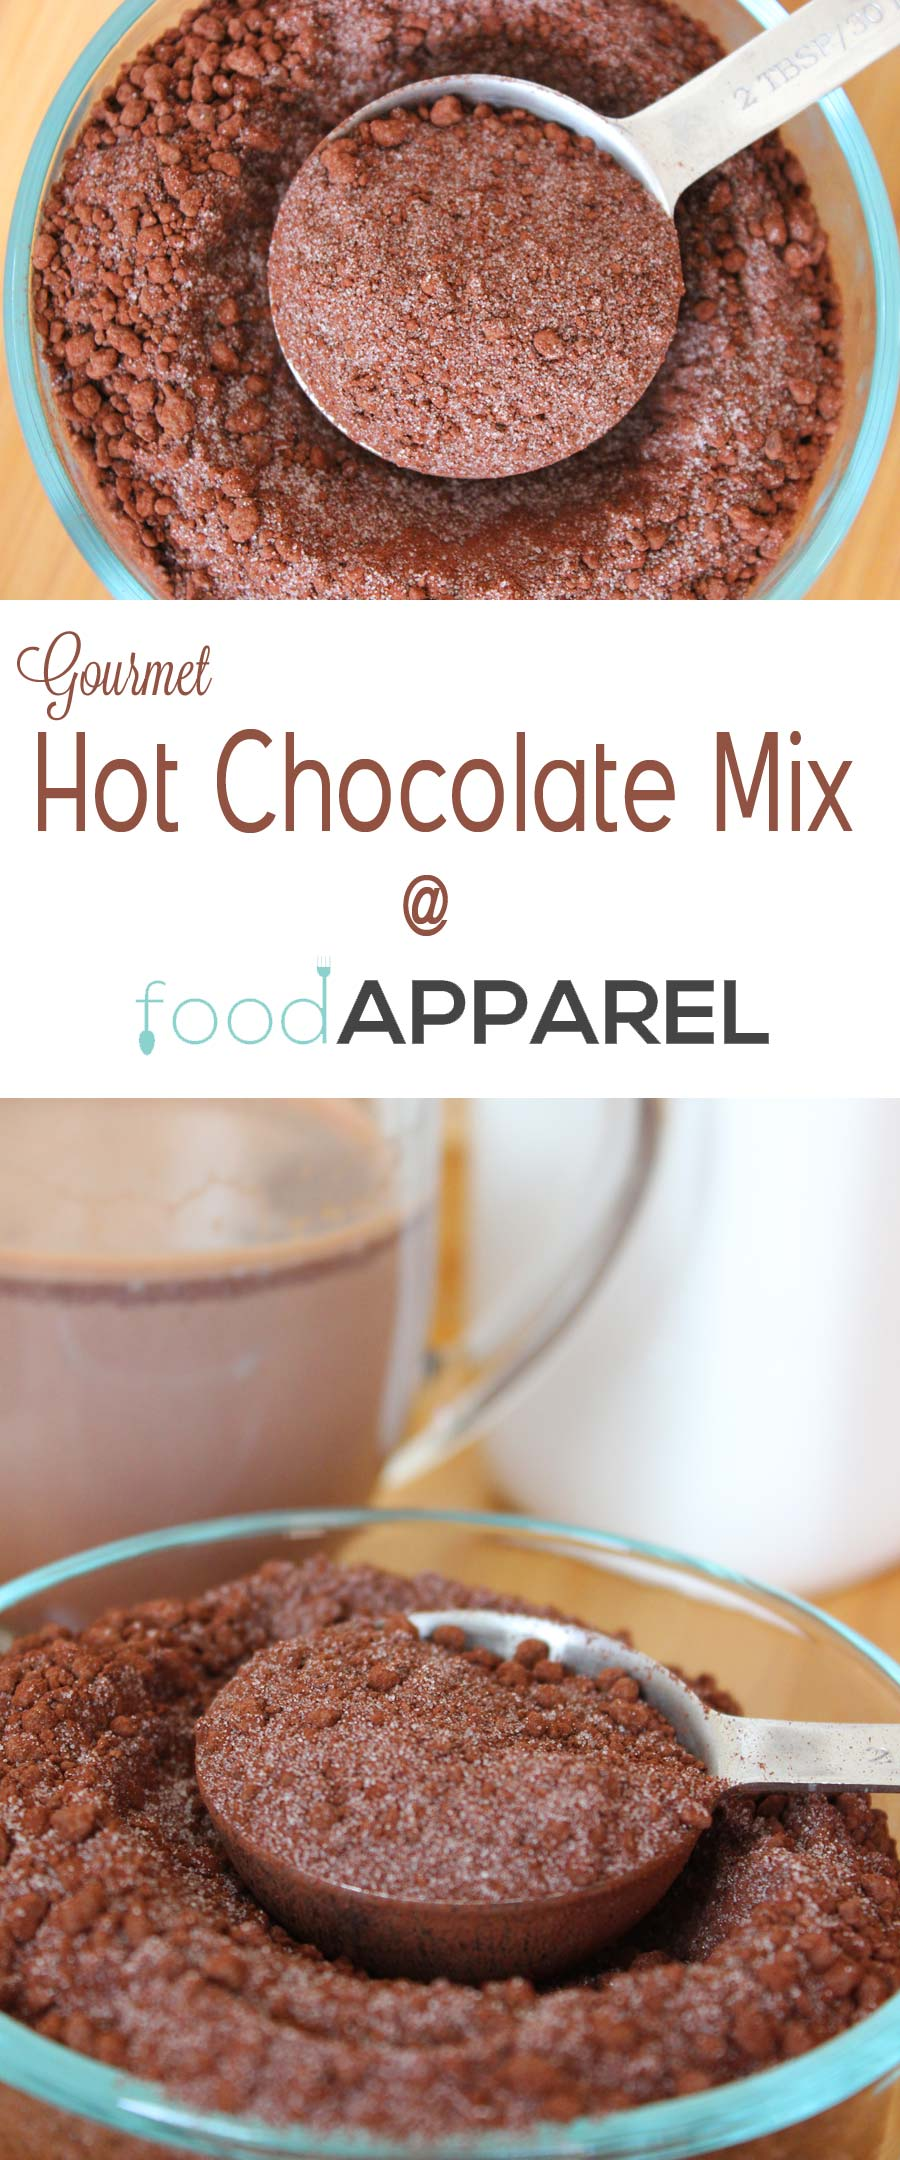 Gourmet Hot Chocolate Mix Recipe | Food Apparel